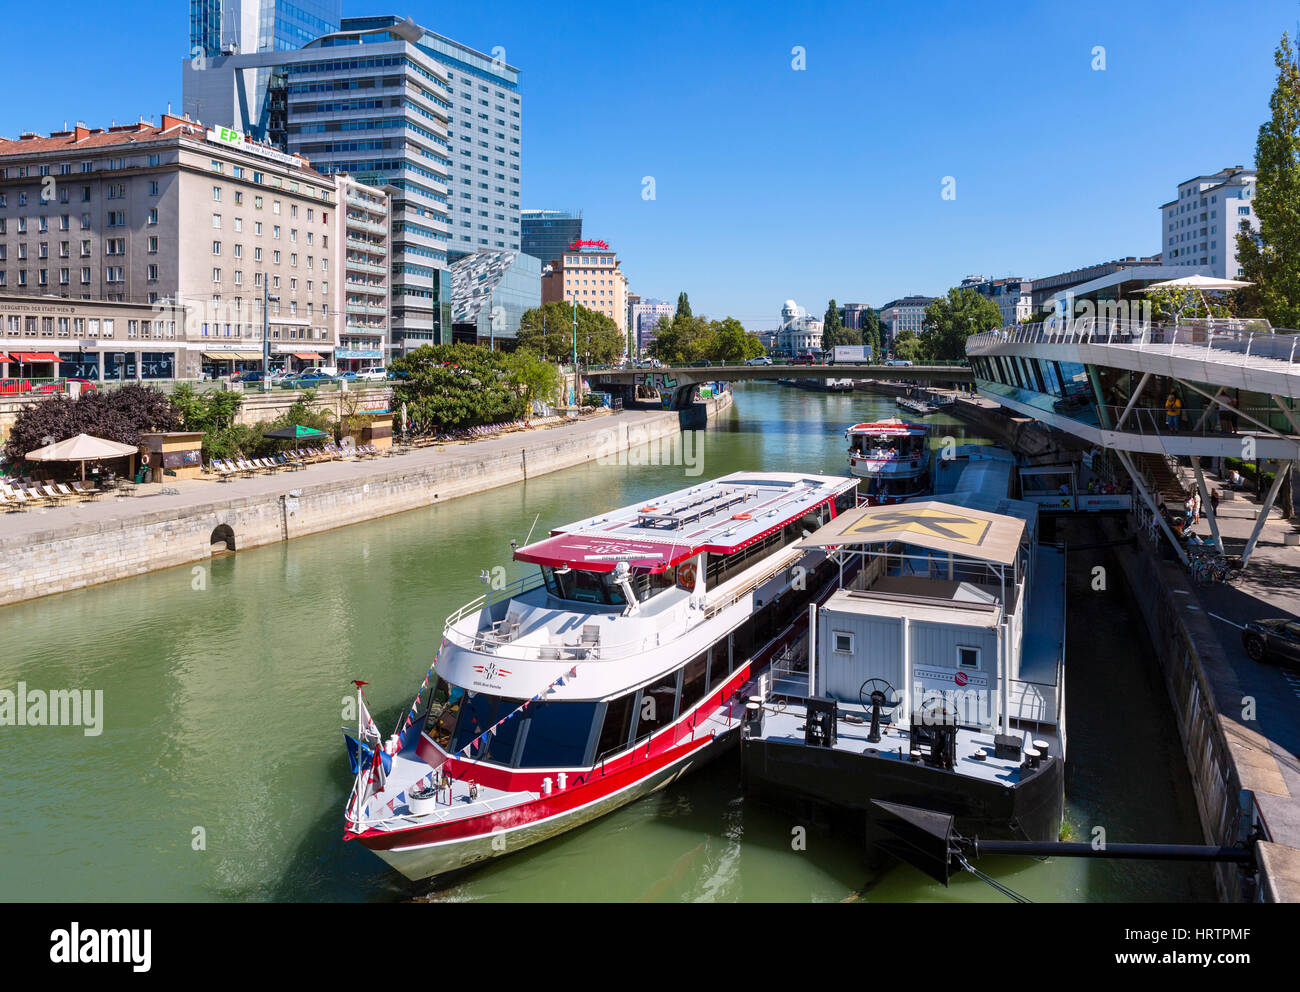 Tour Boat On The Donaukanal Danube Canal At The Schwedenplatz Boat